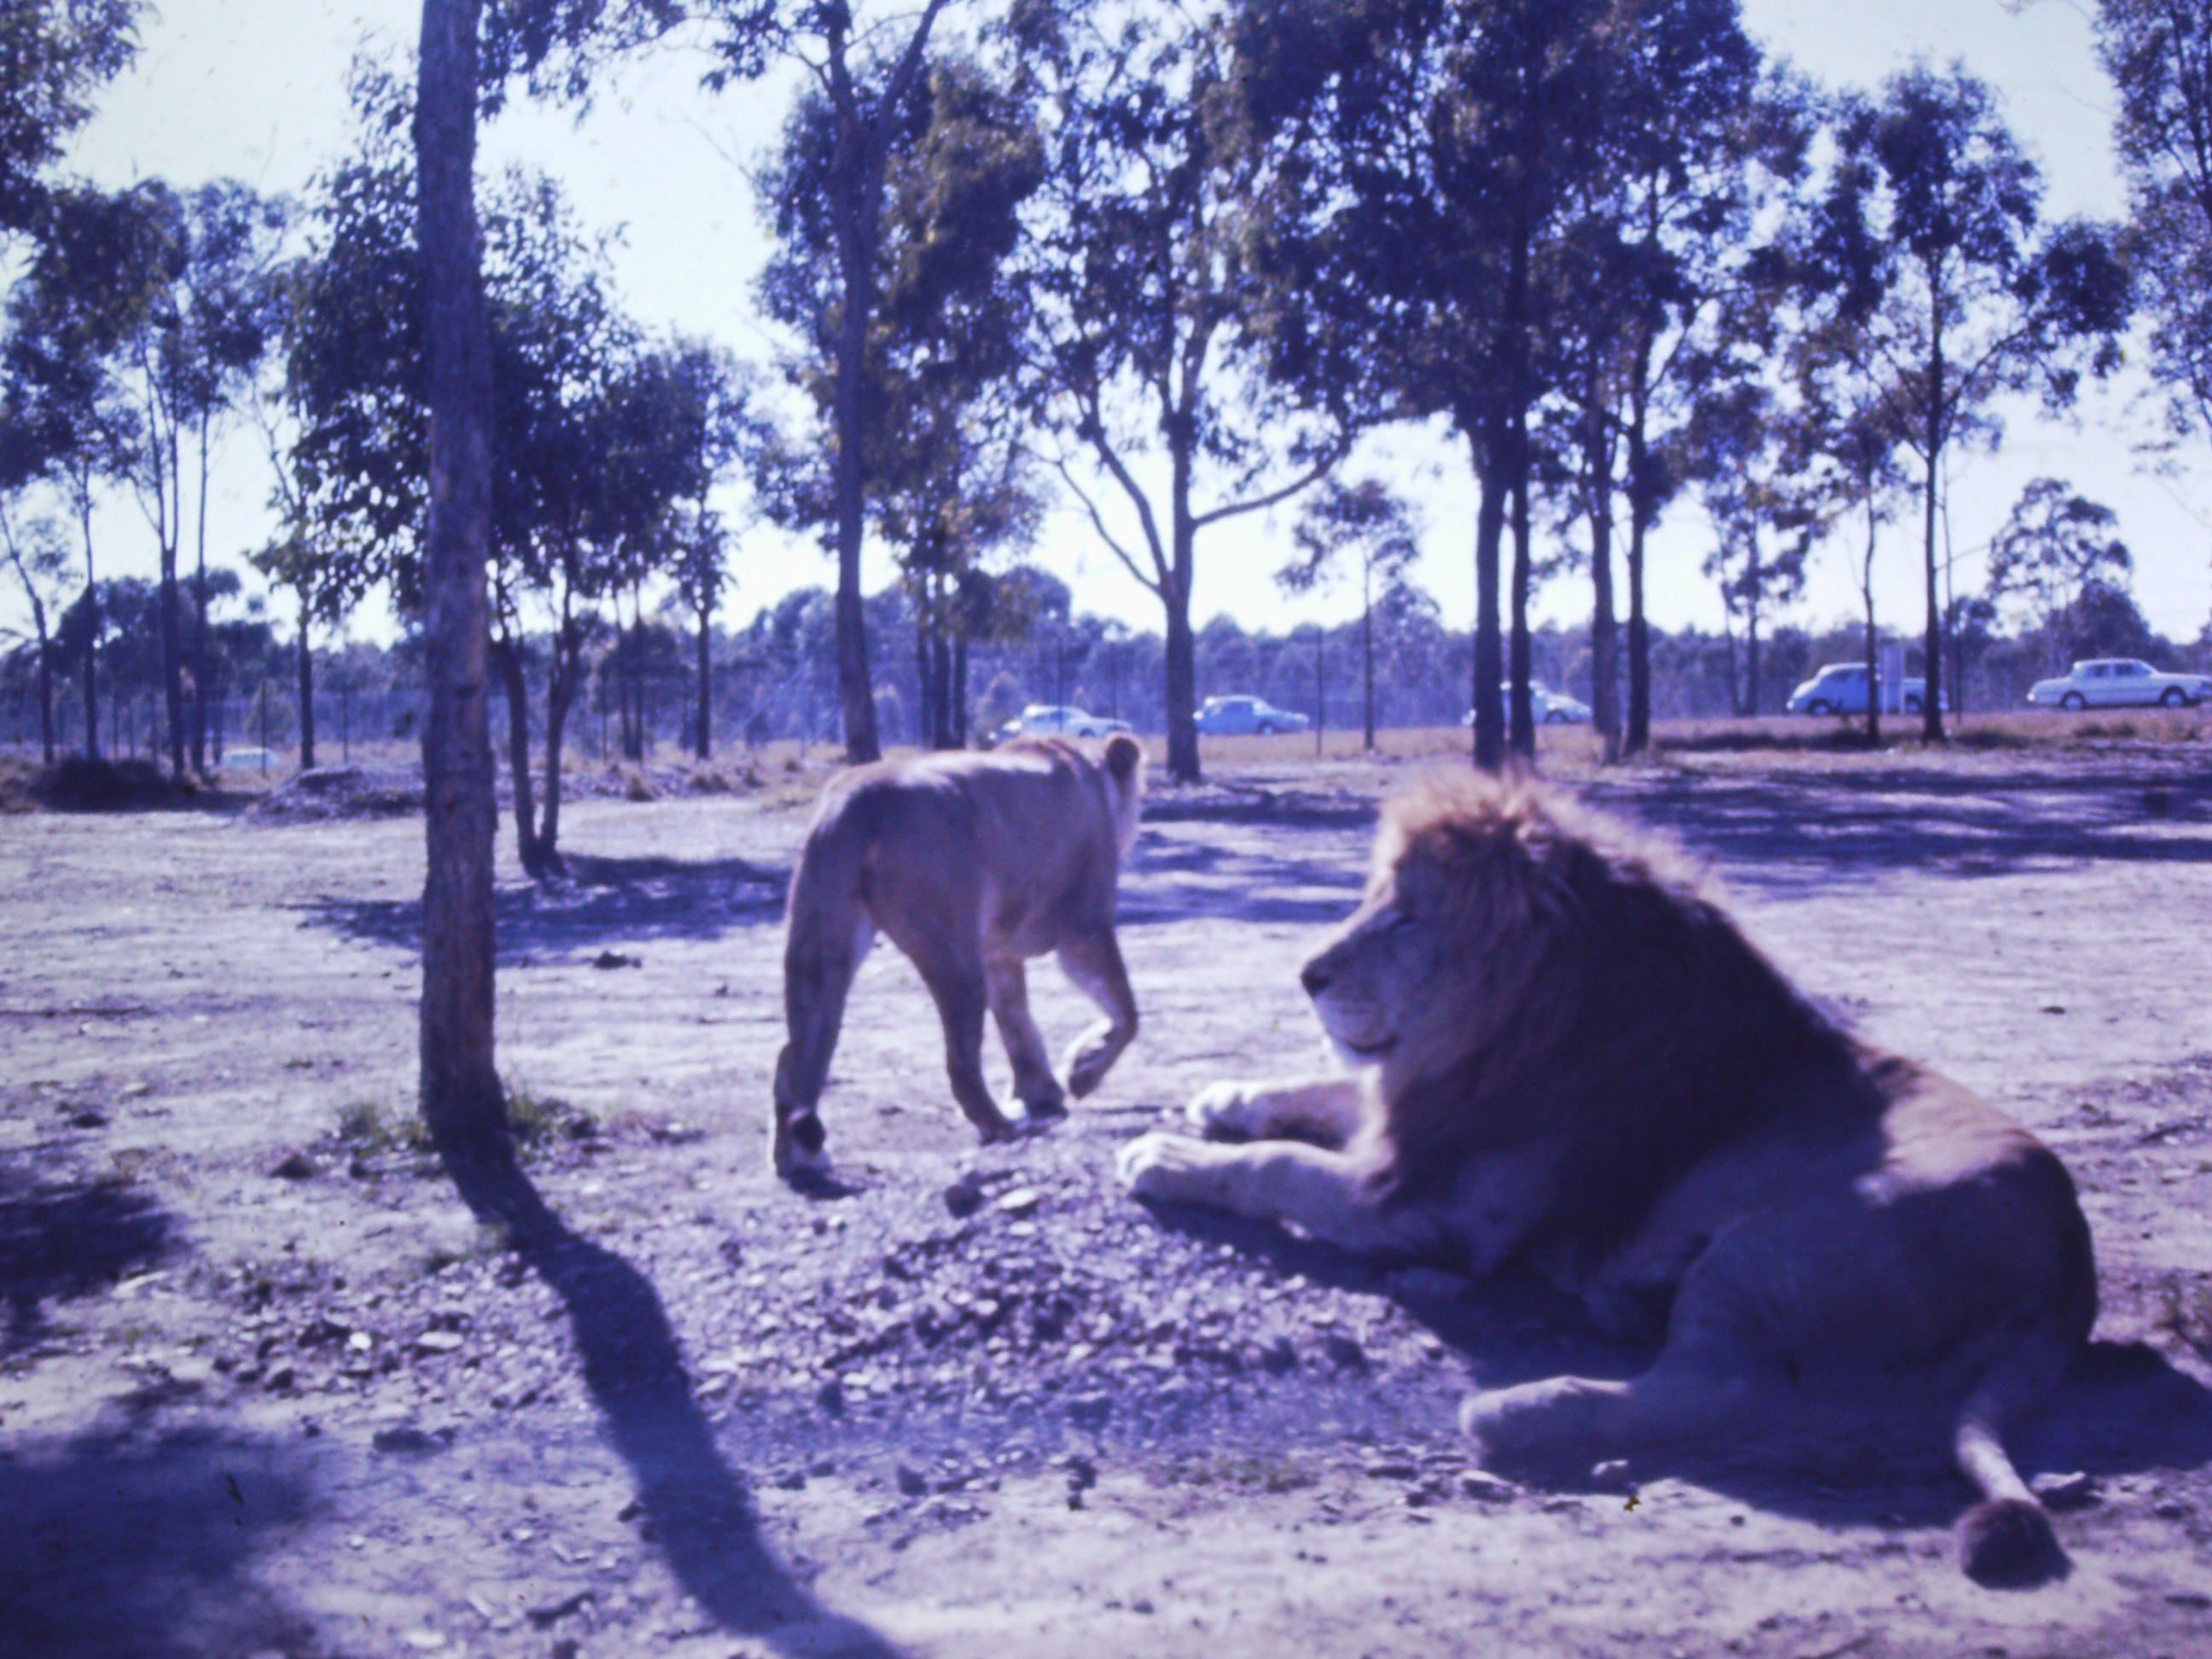 Who Remembers, The Drive Thru Lion Park? Bullens African Lion Safari Park  At Warragamba Dam Opened In 1968.